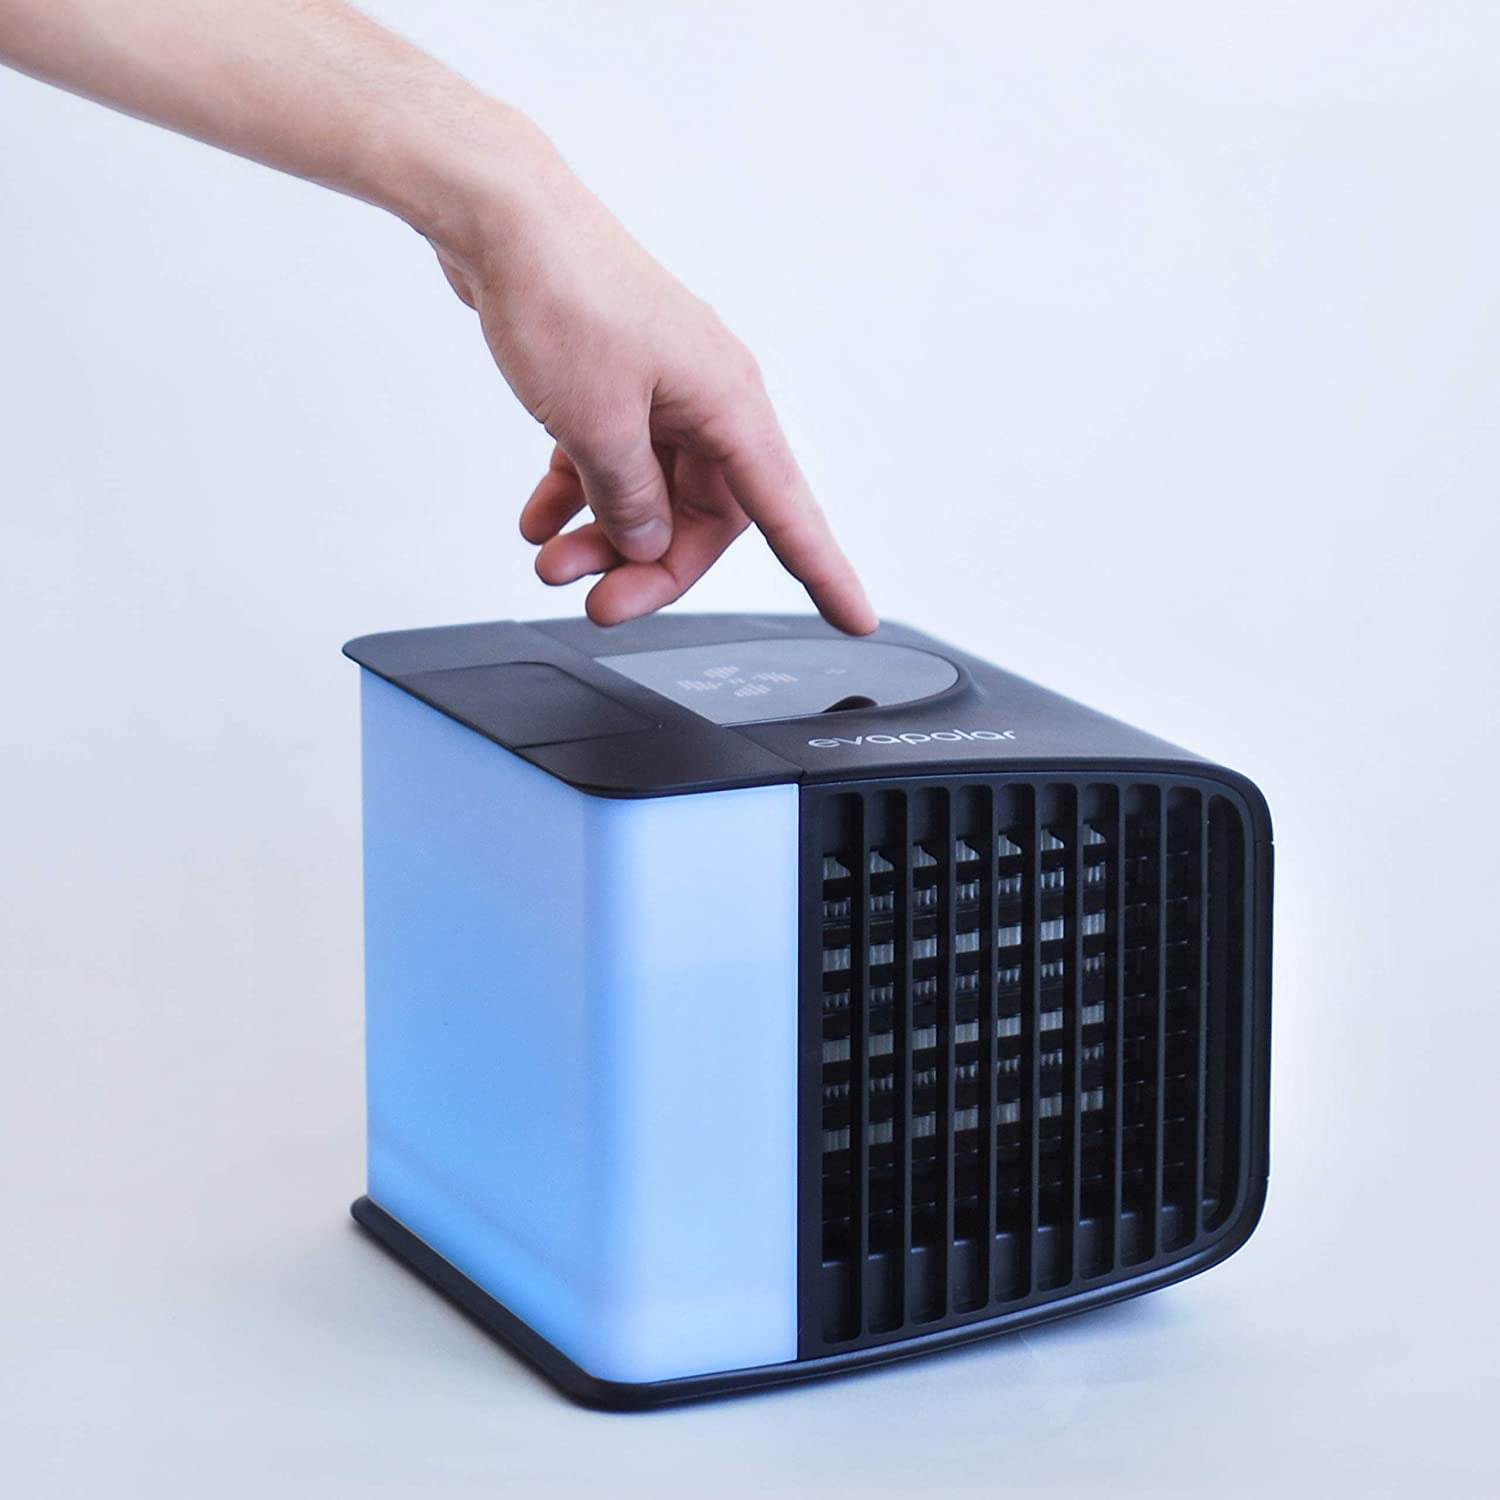 Opaque White Purifier and Humidifier Portable Air Conditioner EV-3000 with Alexa support Evapolar EvaSMART Personal Evaporative Air Cooler